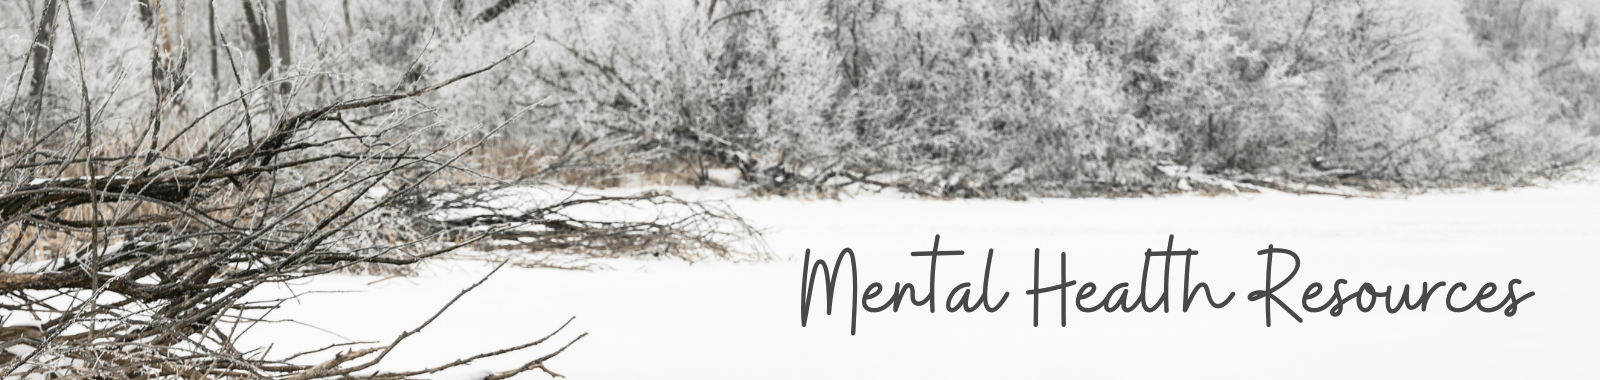 Mental Health Resources with a photo of trees in the winter